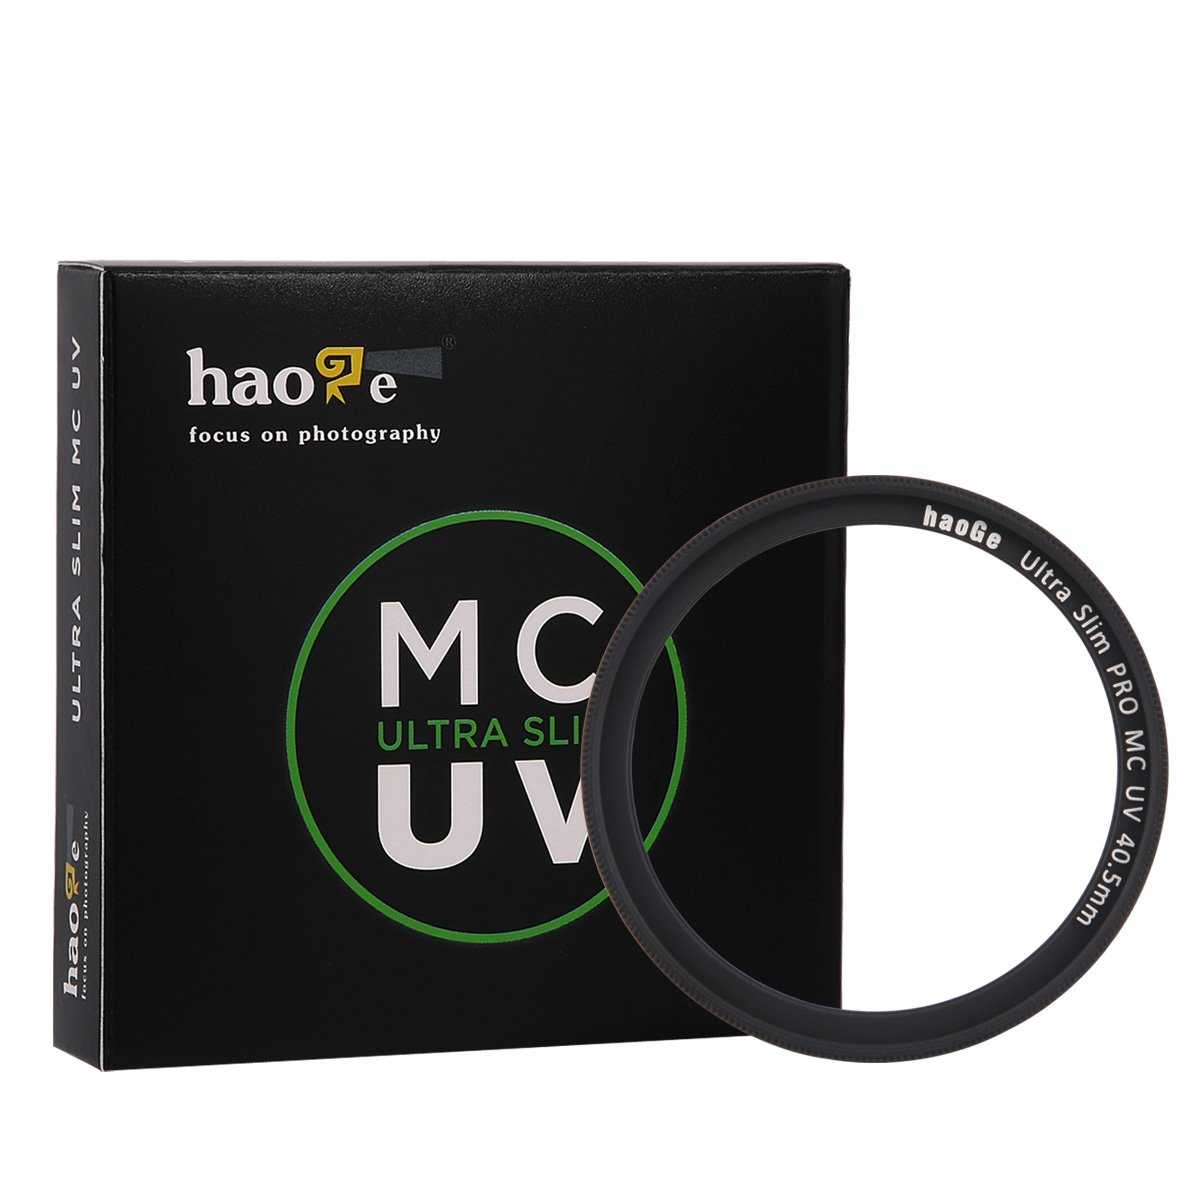 Haoge 40.5mm Ultra Slim MC UV Protection Multicoated Ultraviolet Lens Filter for Sony Alpha a6500 a6300 a6000 a5000 a5100 NEX 5 6 Mirrorless Camera SLR with 16-50mm SELP1650 Lens UV-40.5